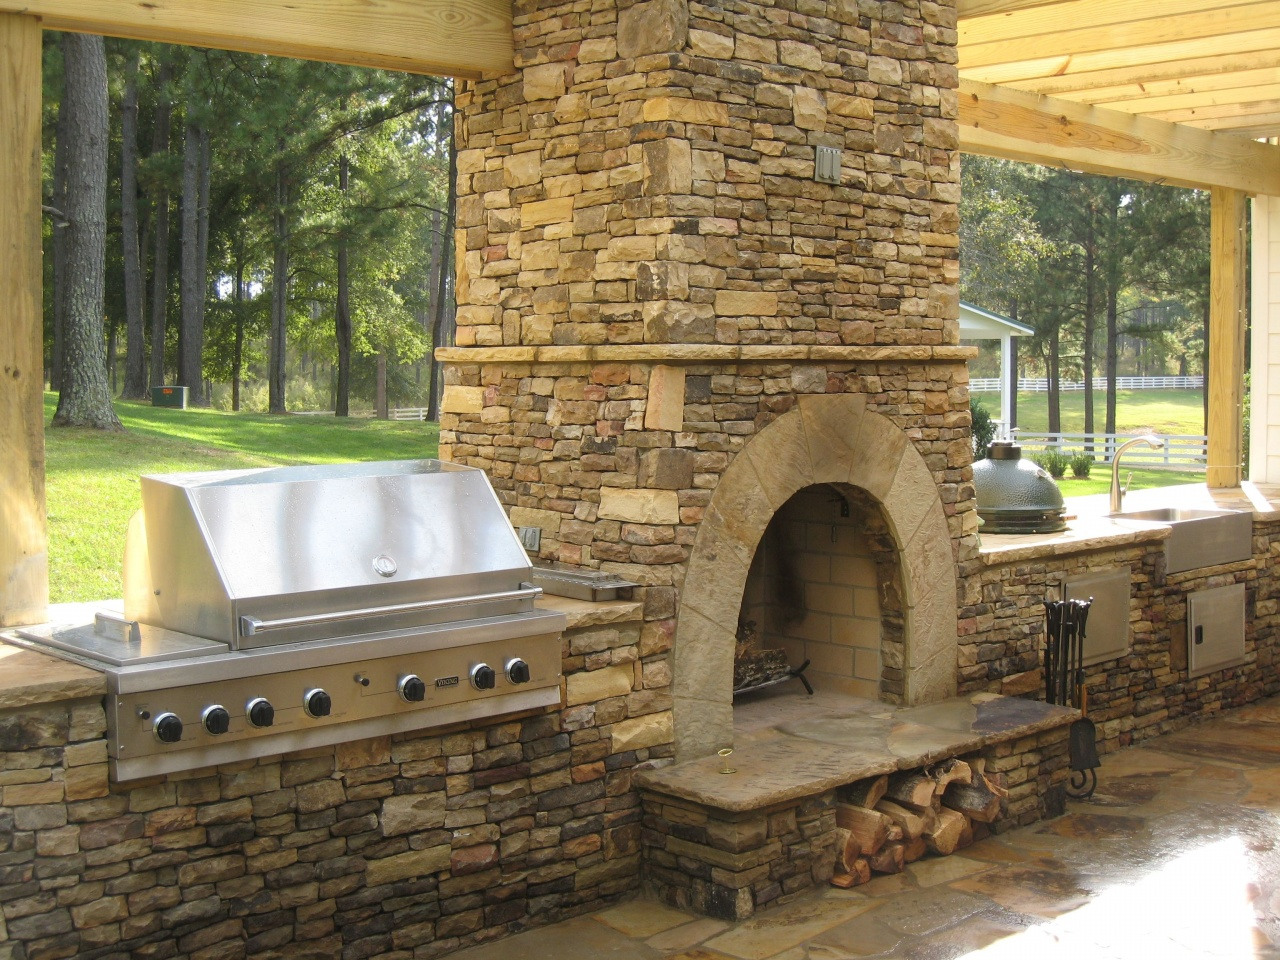 How Much Does It Cost to Build An Outdoor Fireplace ... on Outdoor Kitchen And Fireplace Ideas id=13004